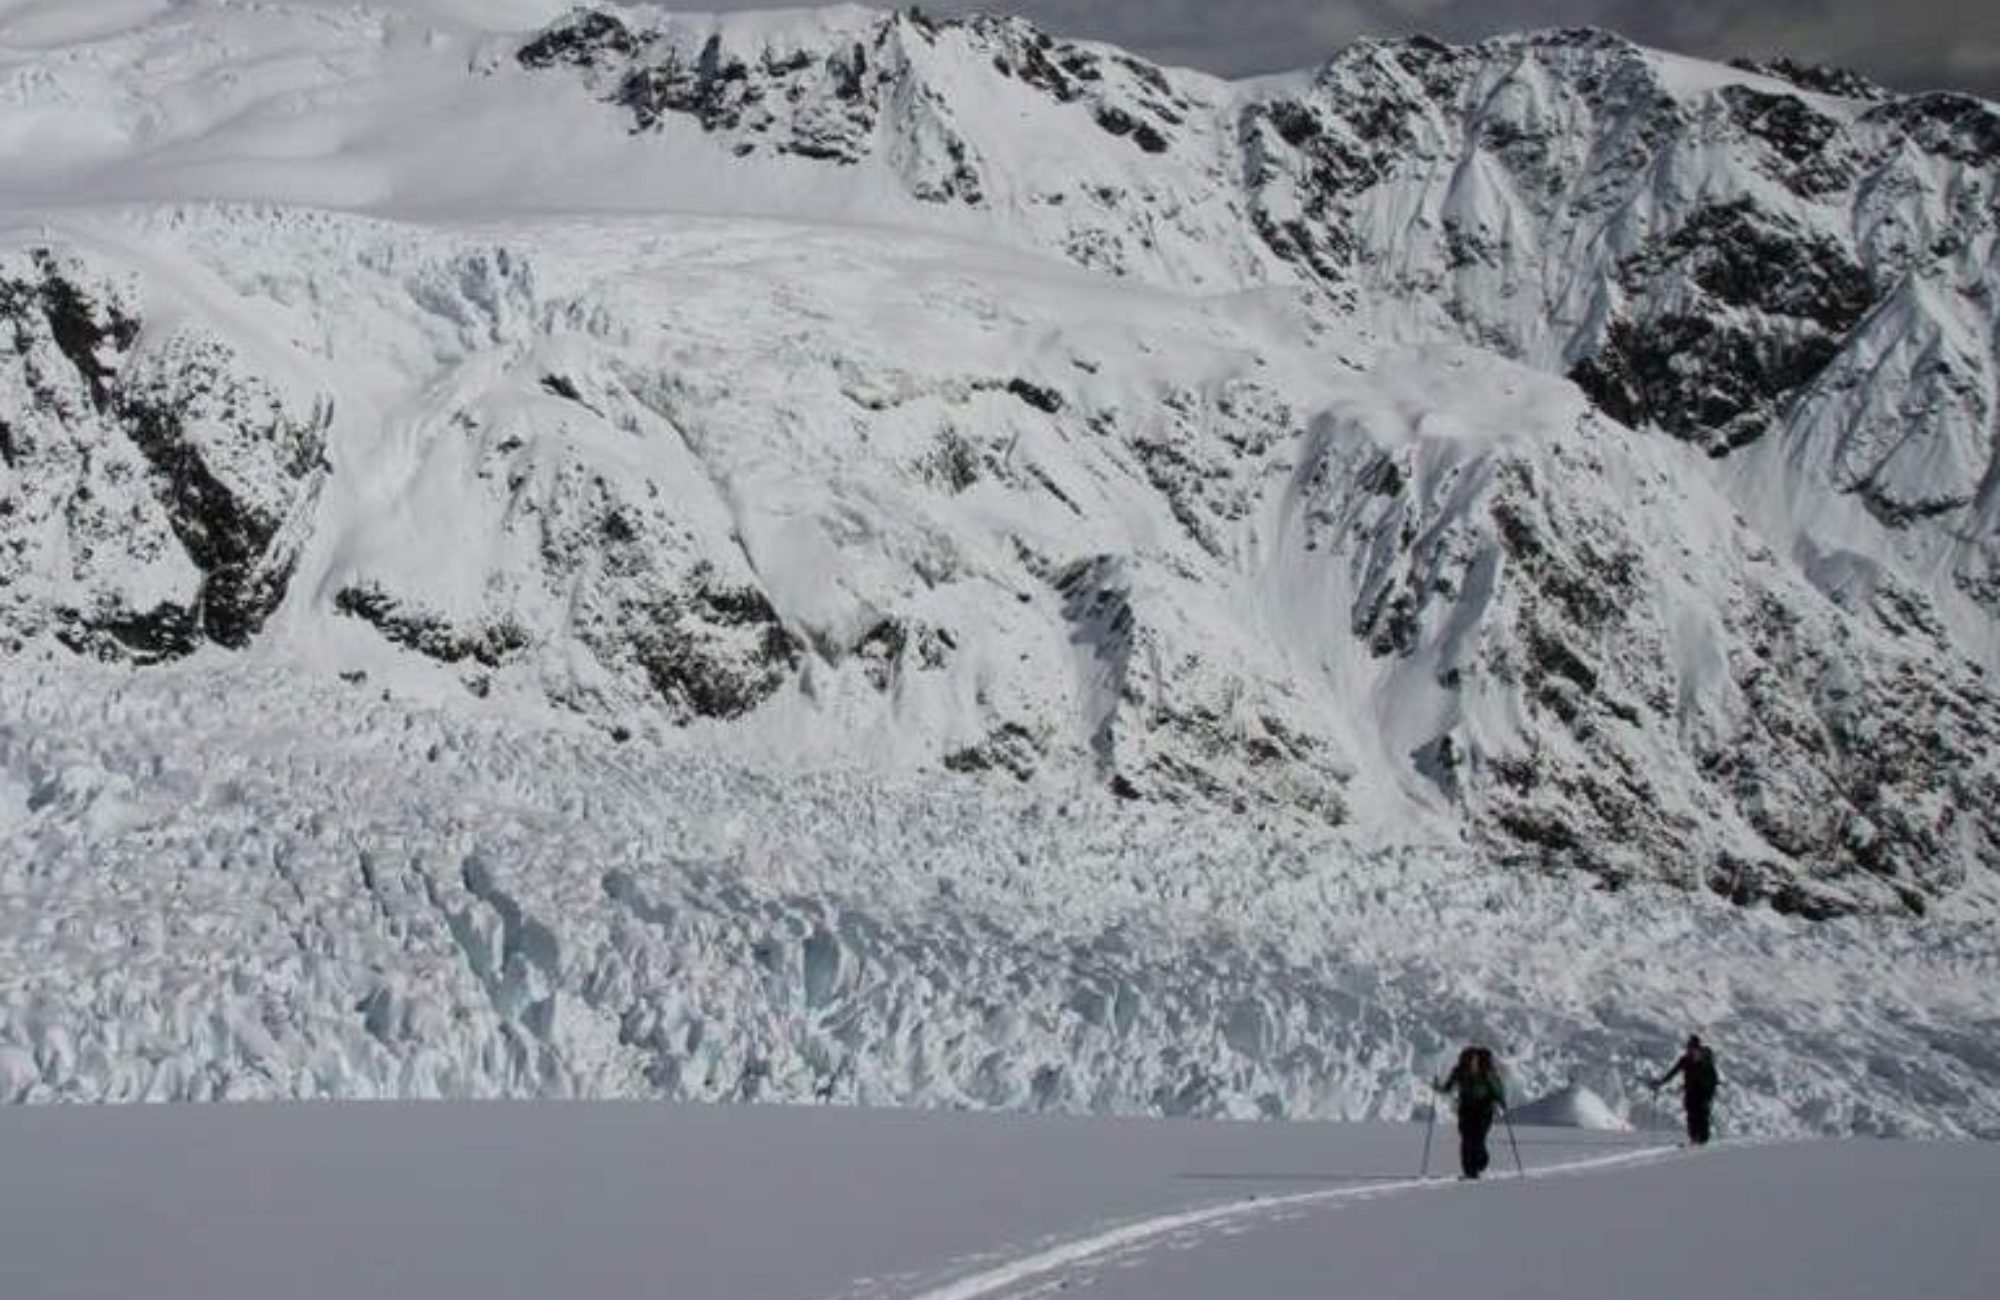 Backcountry skiing New Zealand